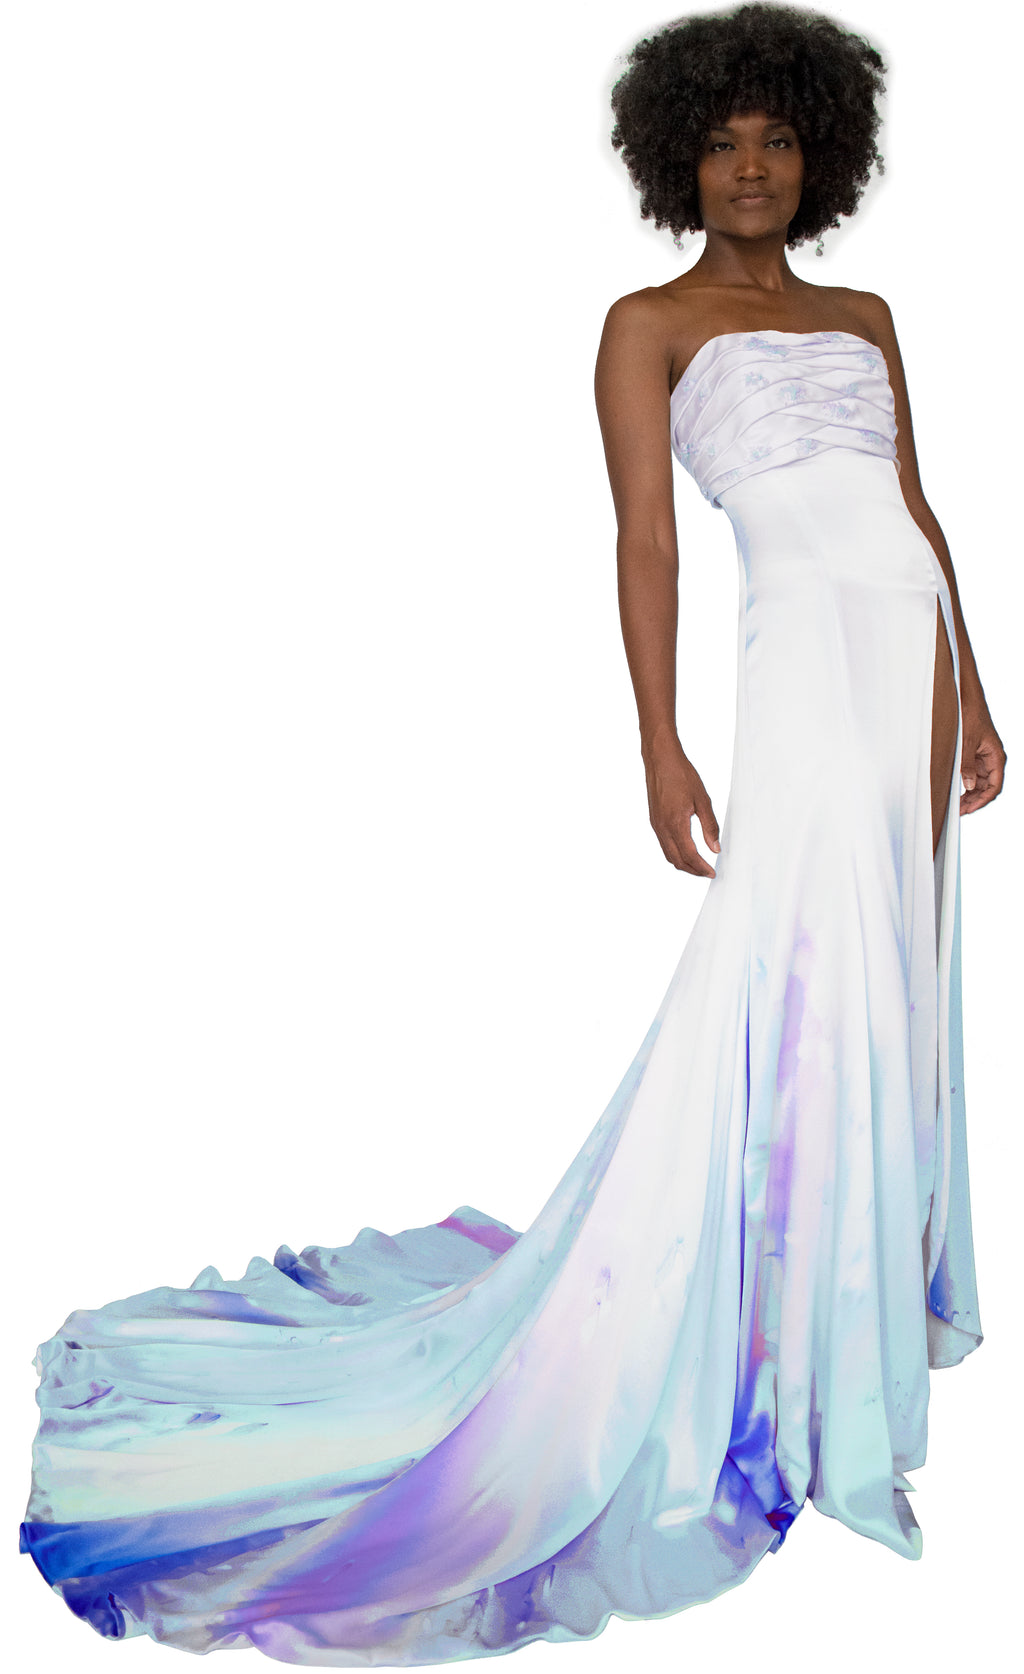 Lady of Verona Silk-Painted Gown with Ribbon Embroidery - KxLNewYork